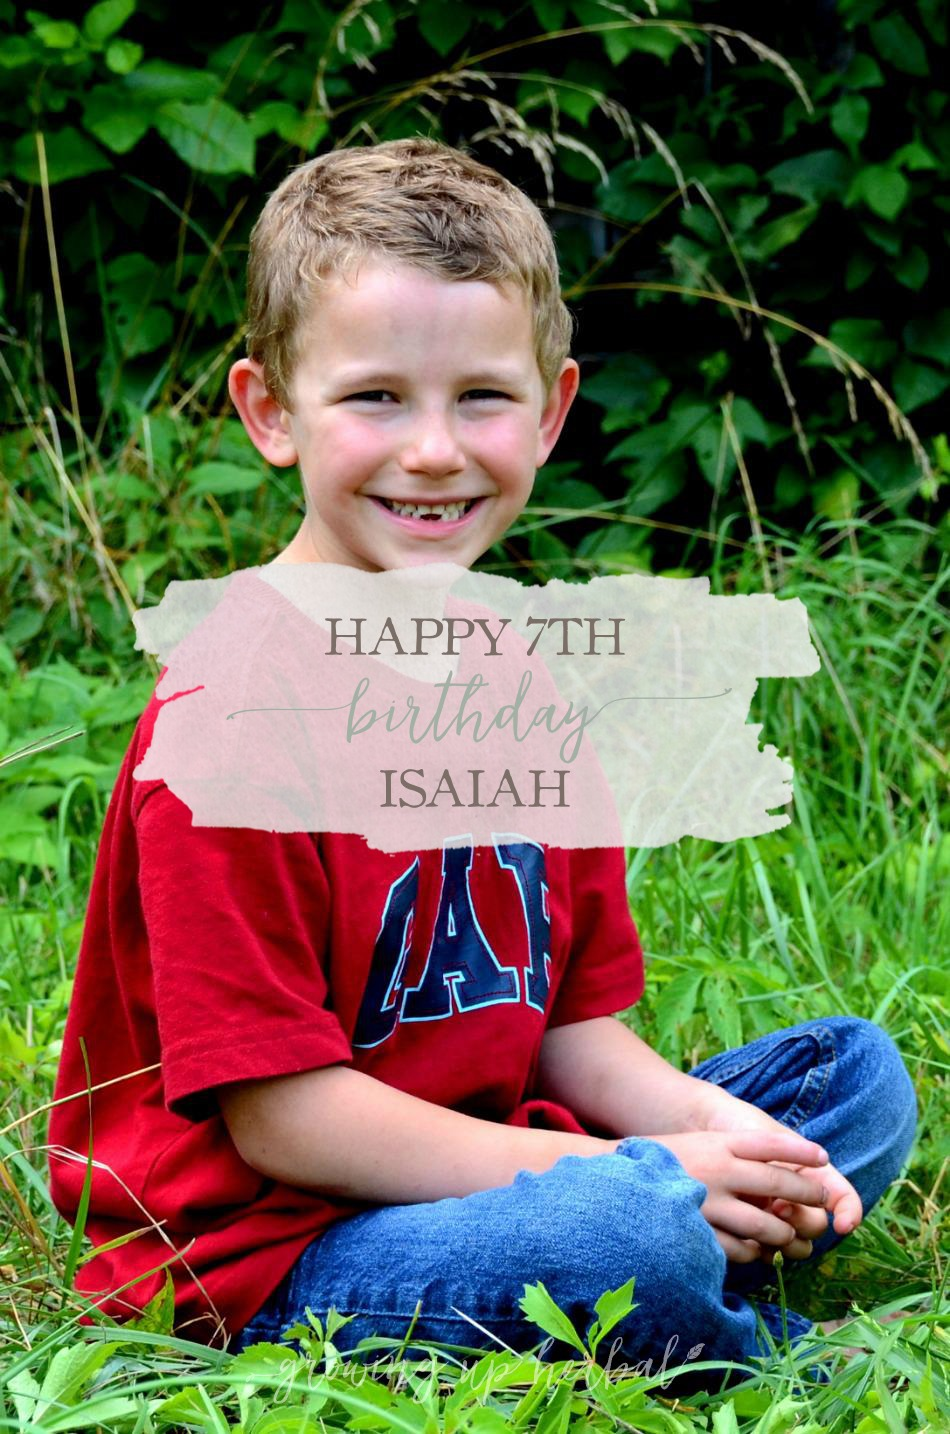 Happy 7th Birthday Isaiah | Growing Up Herbal | Today is Isaiah's 7th birthday, and I'm sharing some photos of him over the years!